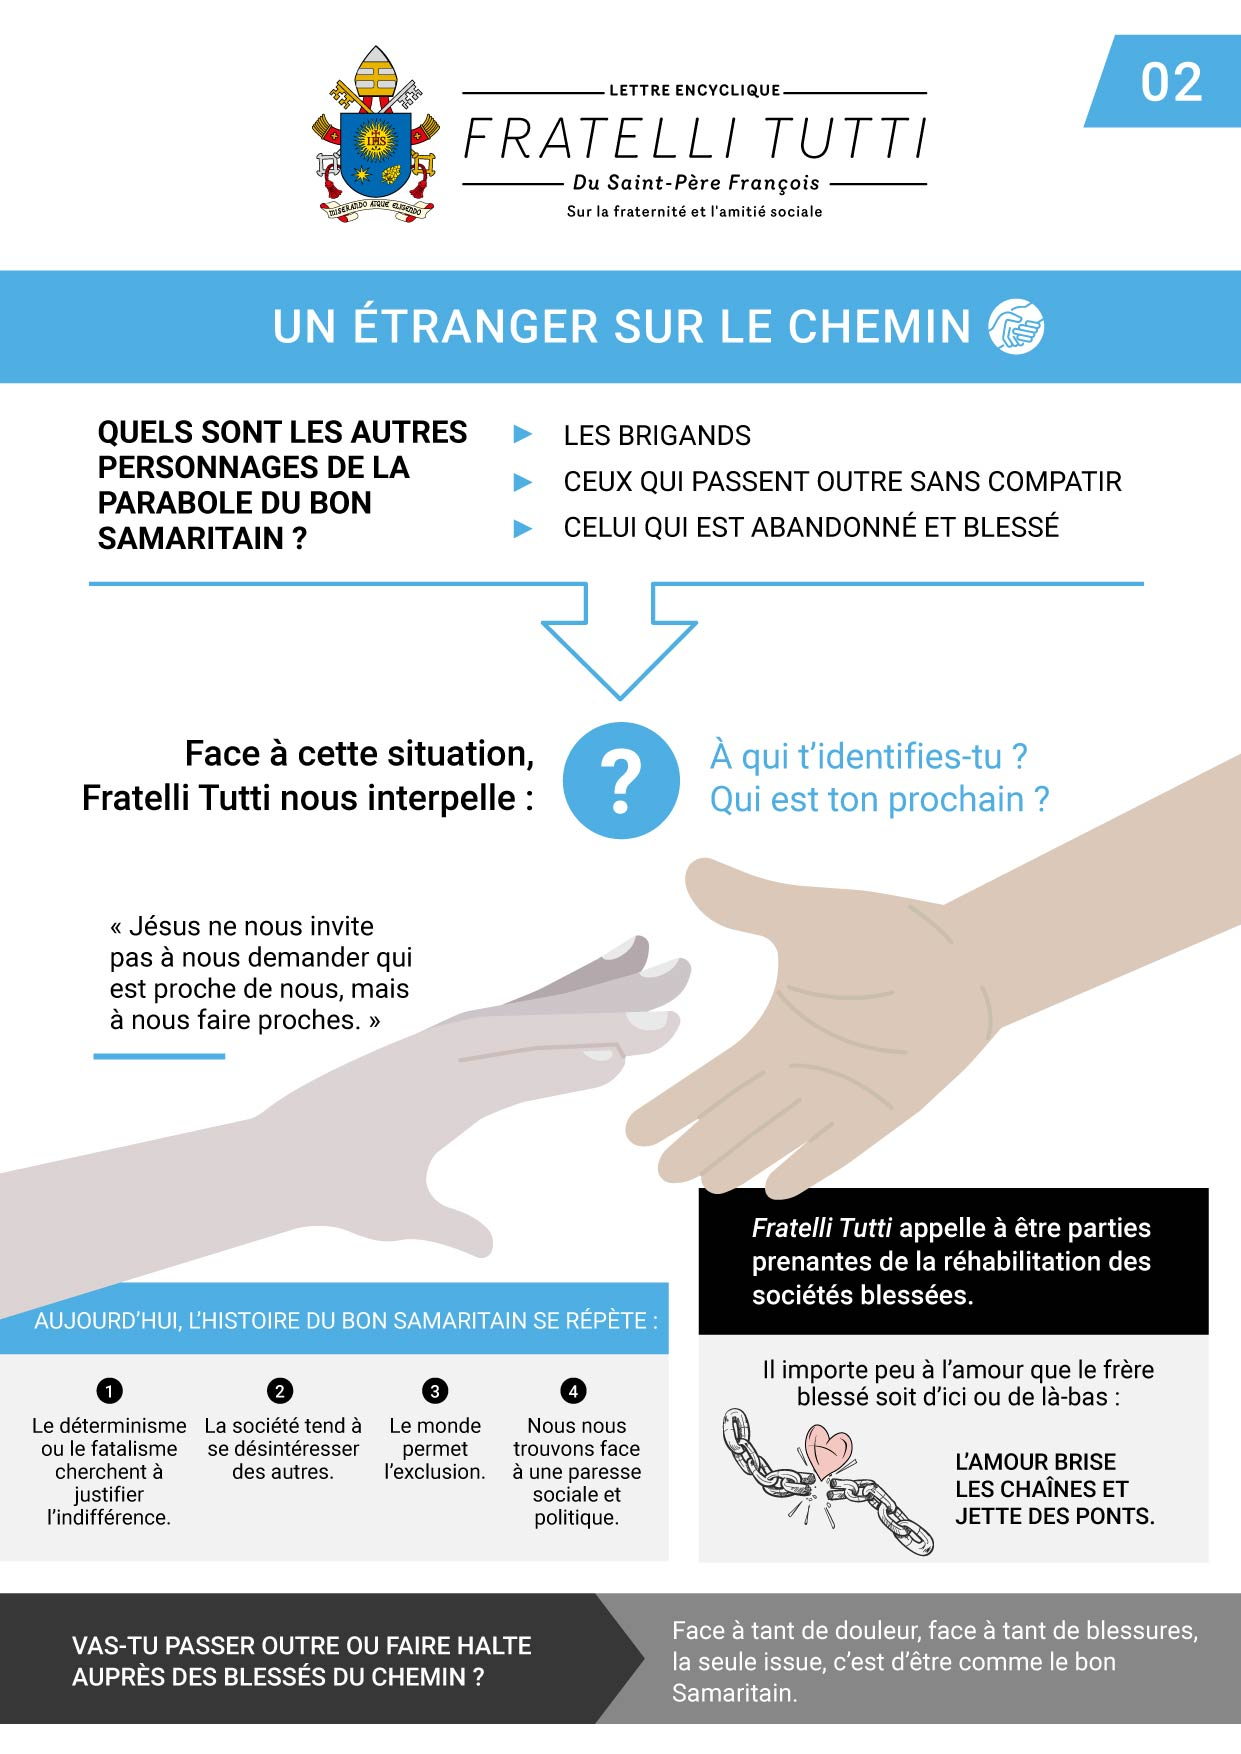 07 infographie 2 fratelli tutti chap ii fr